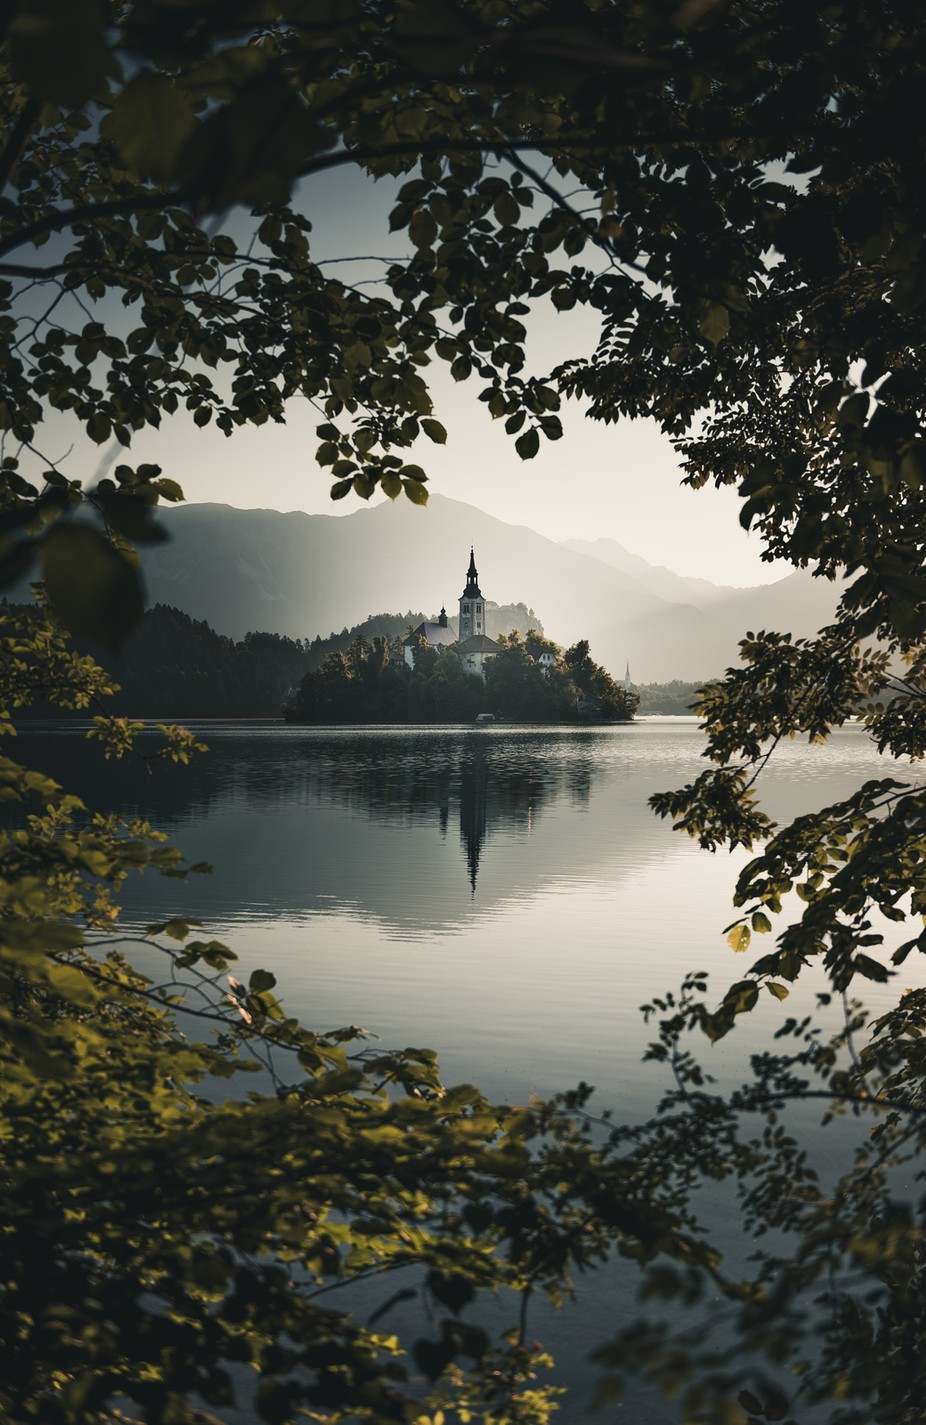 Lake Bled by PaulWatsonPhotography - Image Of The Month Photo Contest Vol 35